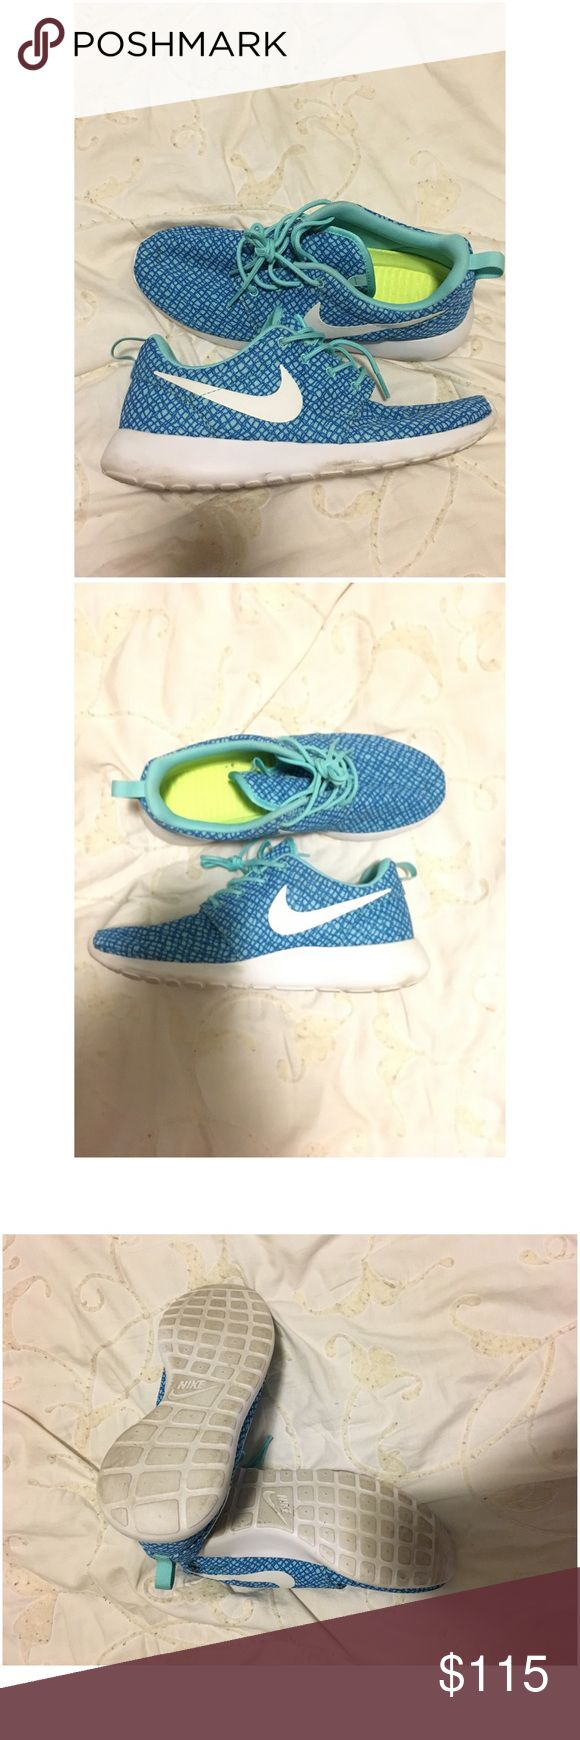 Blue NikeID Running Shoes Blue NikeID running shoes with a lighter teal print. Worn once. Nike Shoes Sneakers